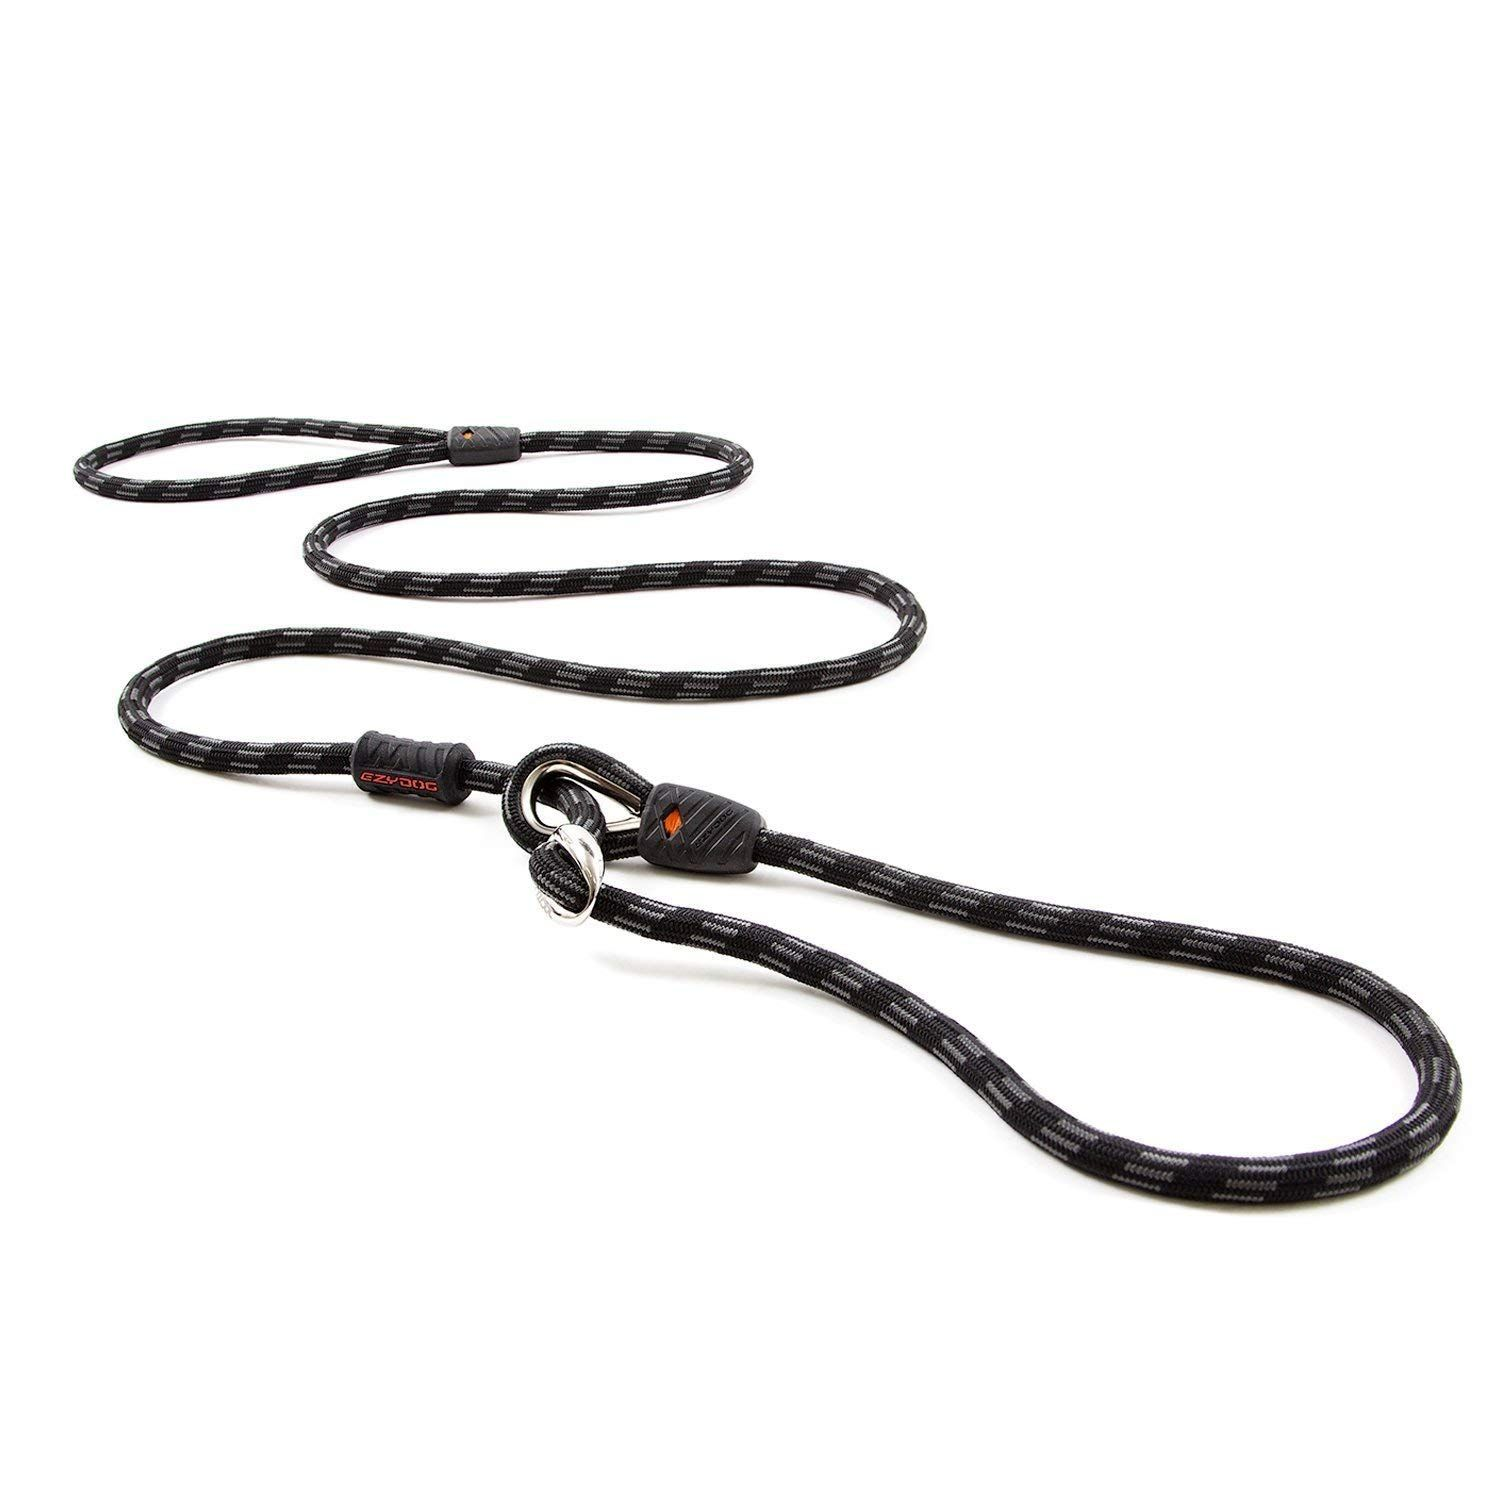 Ezydog Luca Leash All In One Slip Collar Leash Combo For